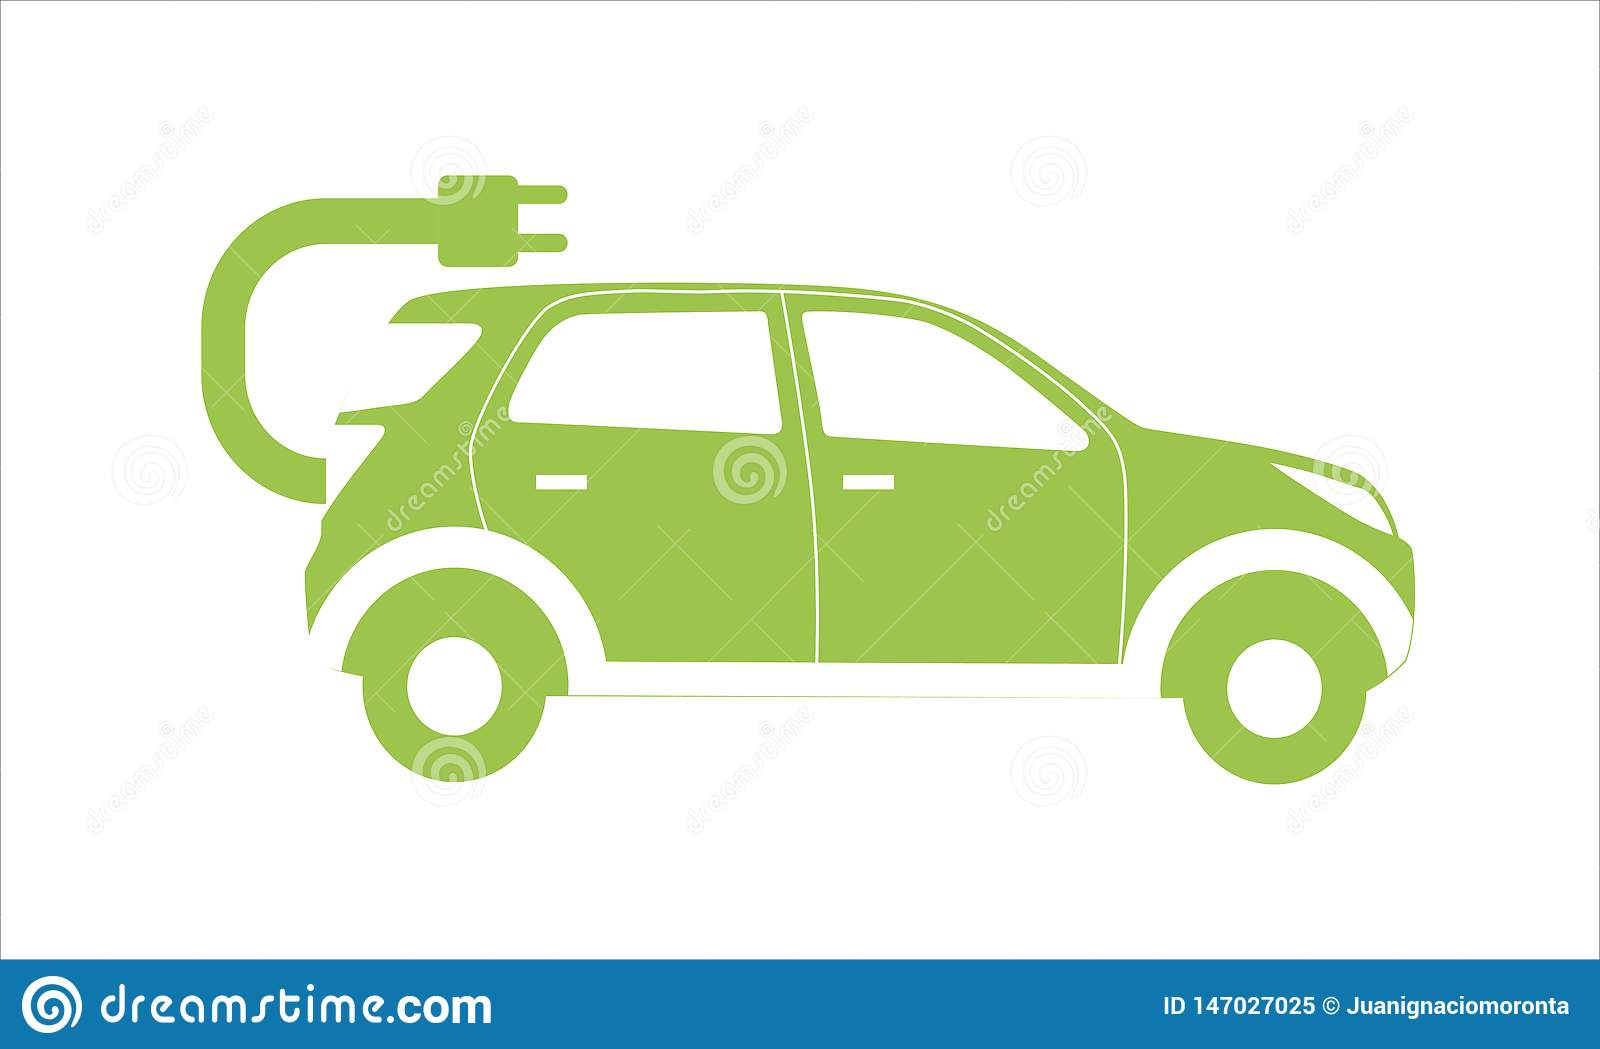 Vectorial icon of electric car